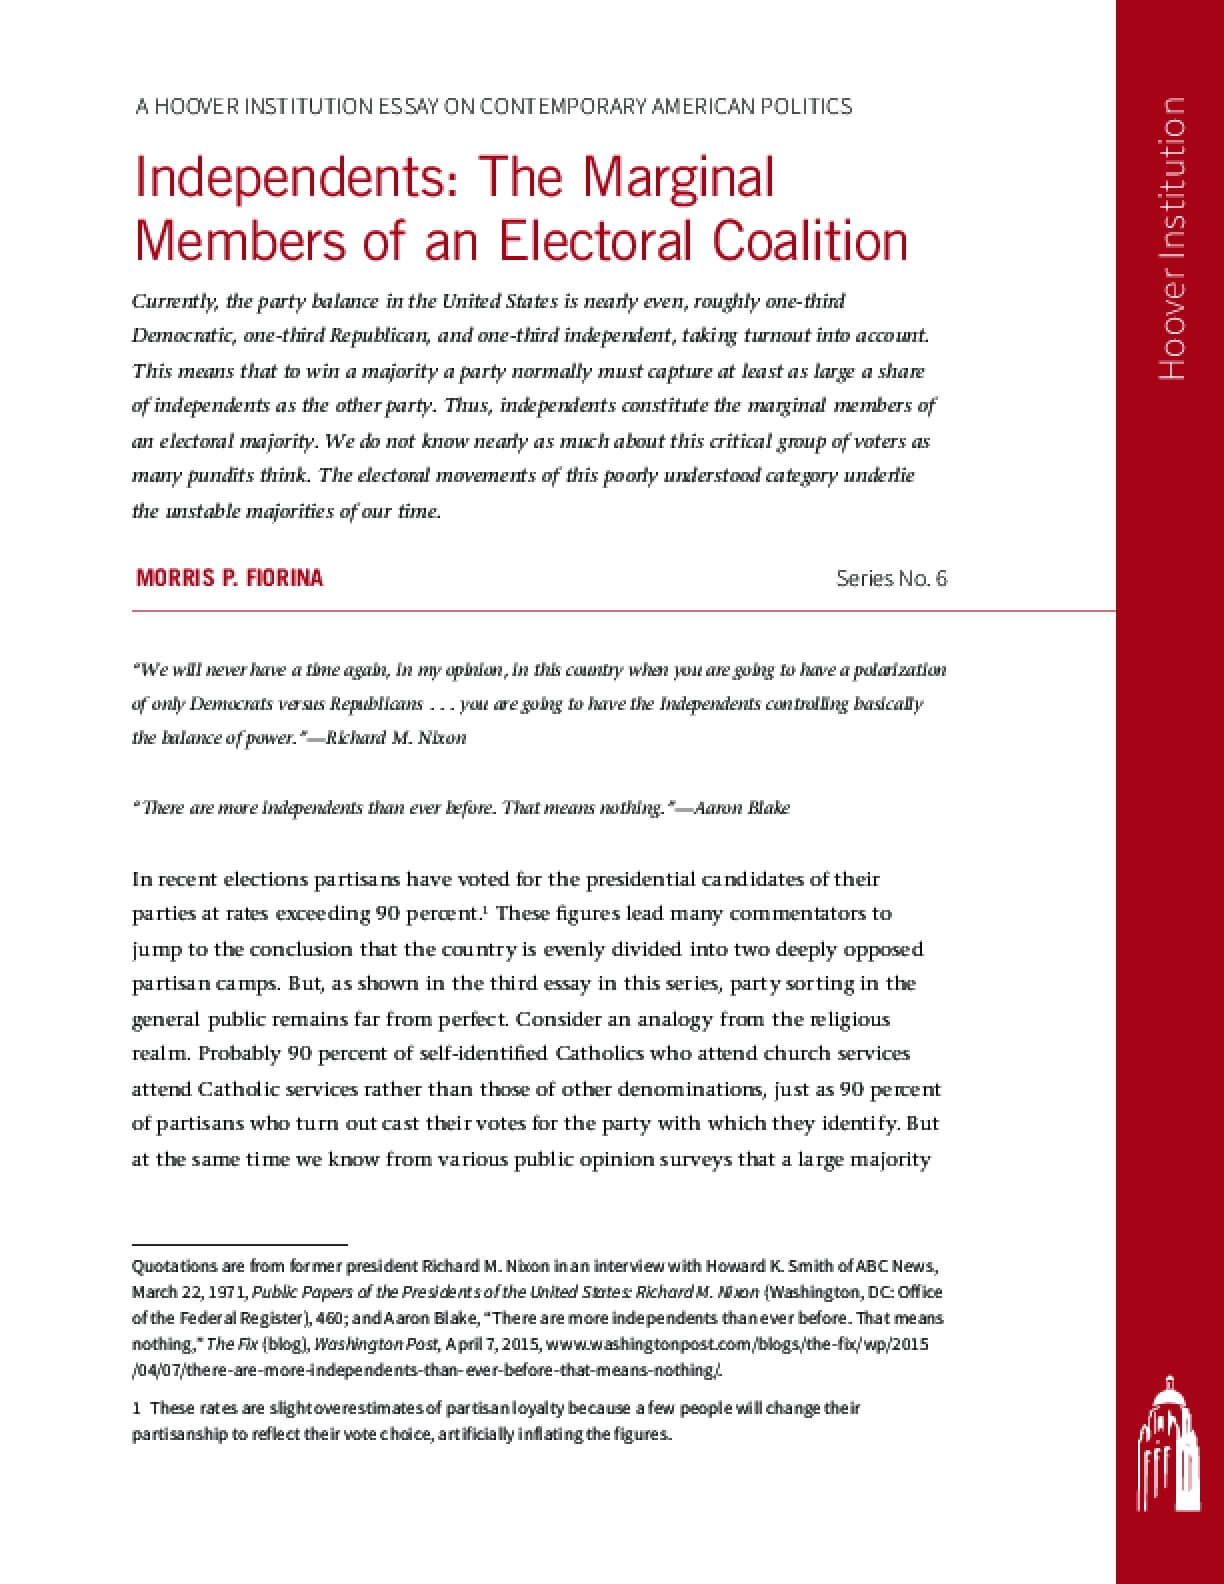 Independents: The Marginal Members Of An Electoral Coalition